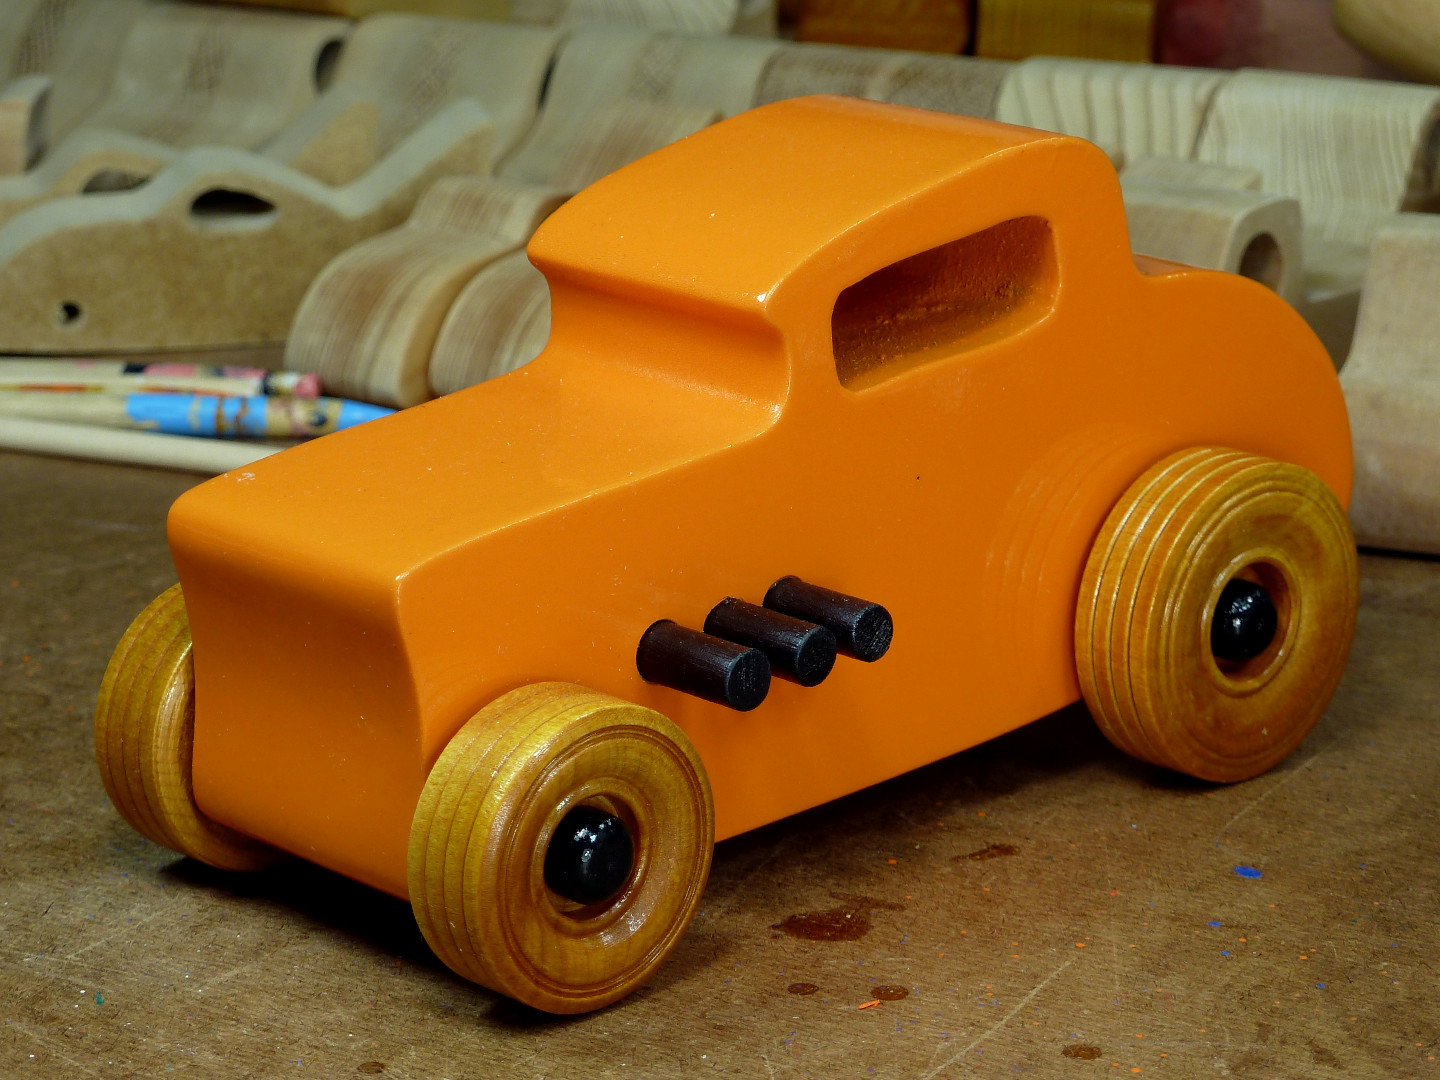 20170522-191843 Wooden Toy Car - Hot Rod Freaky Ford - 32 Deuce Coupe - MDF - Orange - Amber Shellac - Black.jpg